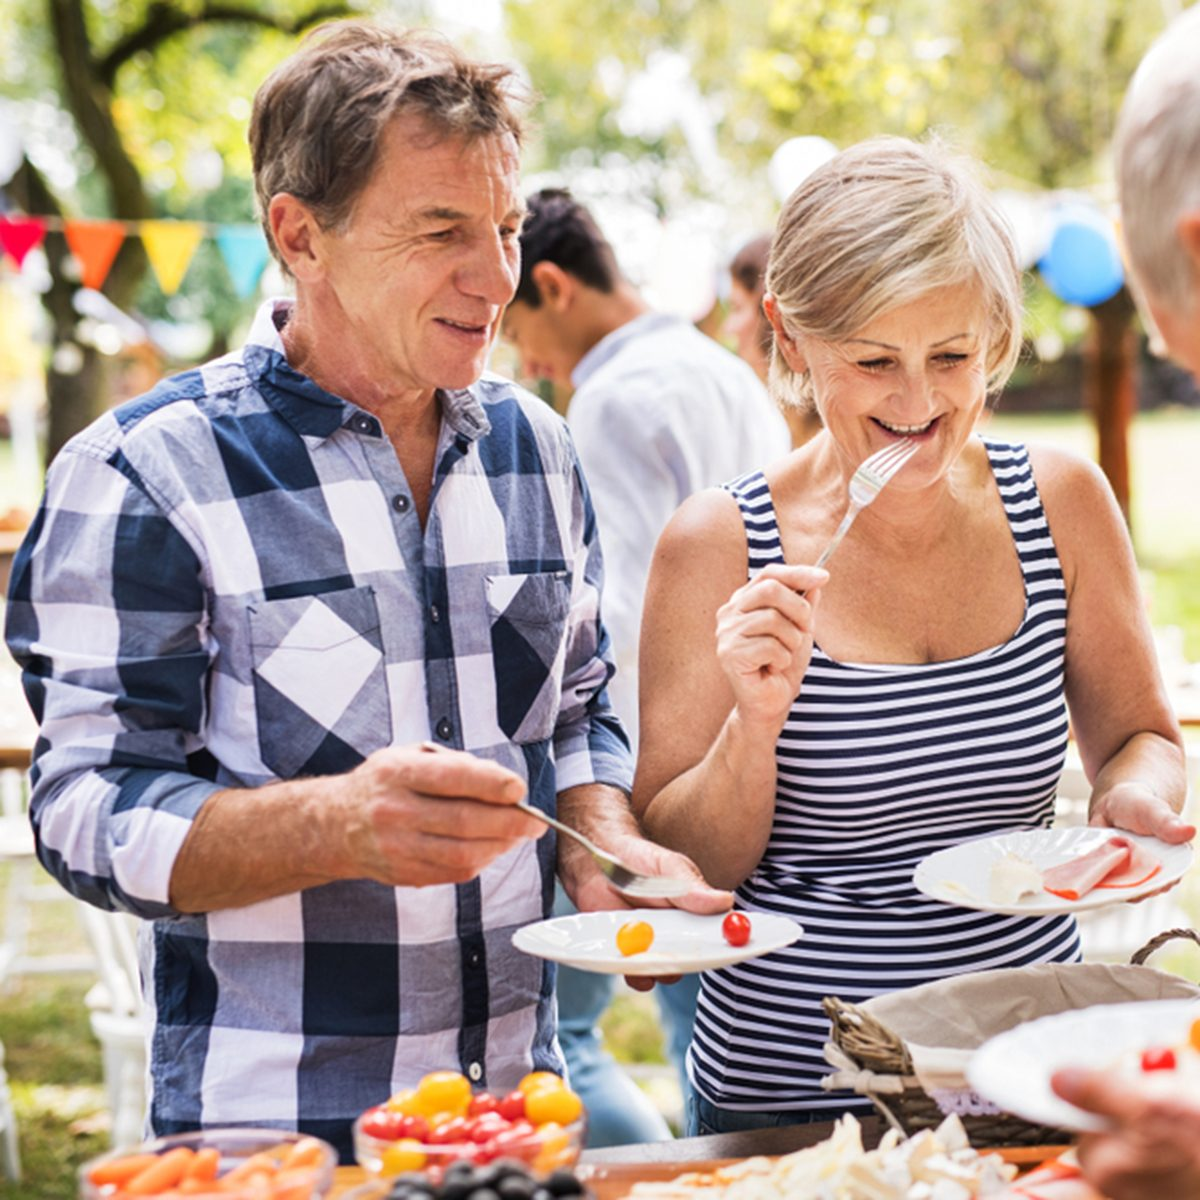 Family celebration or a garden party outside in the backyard.; Shutterstock ID 1109850203; Job (TFH, TOH, RD, BNB, CWM, CM): Taste of Home